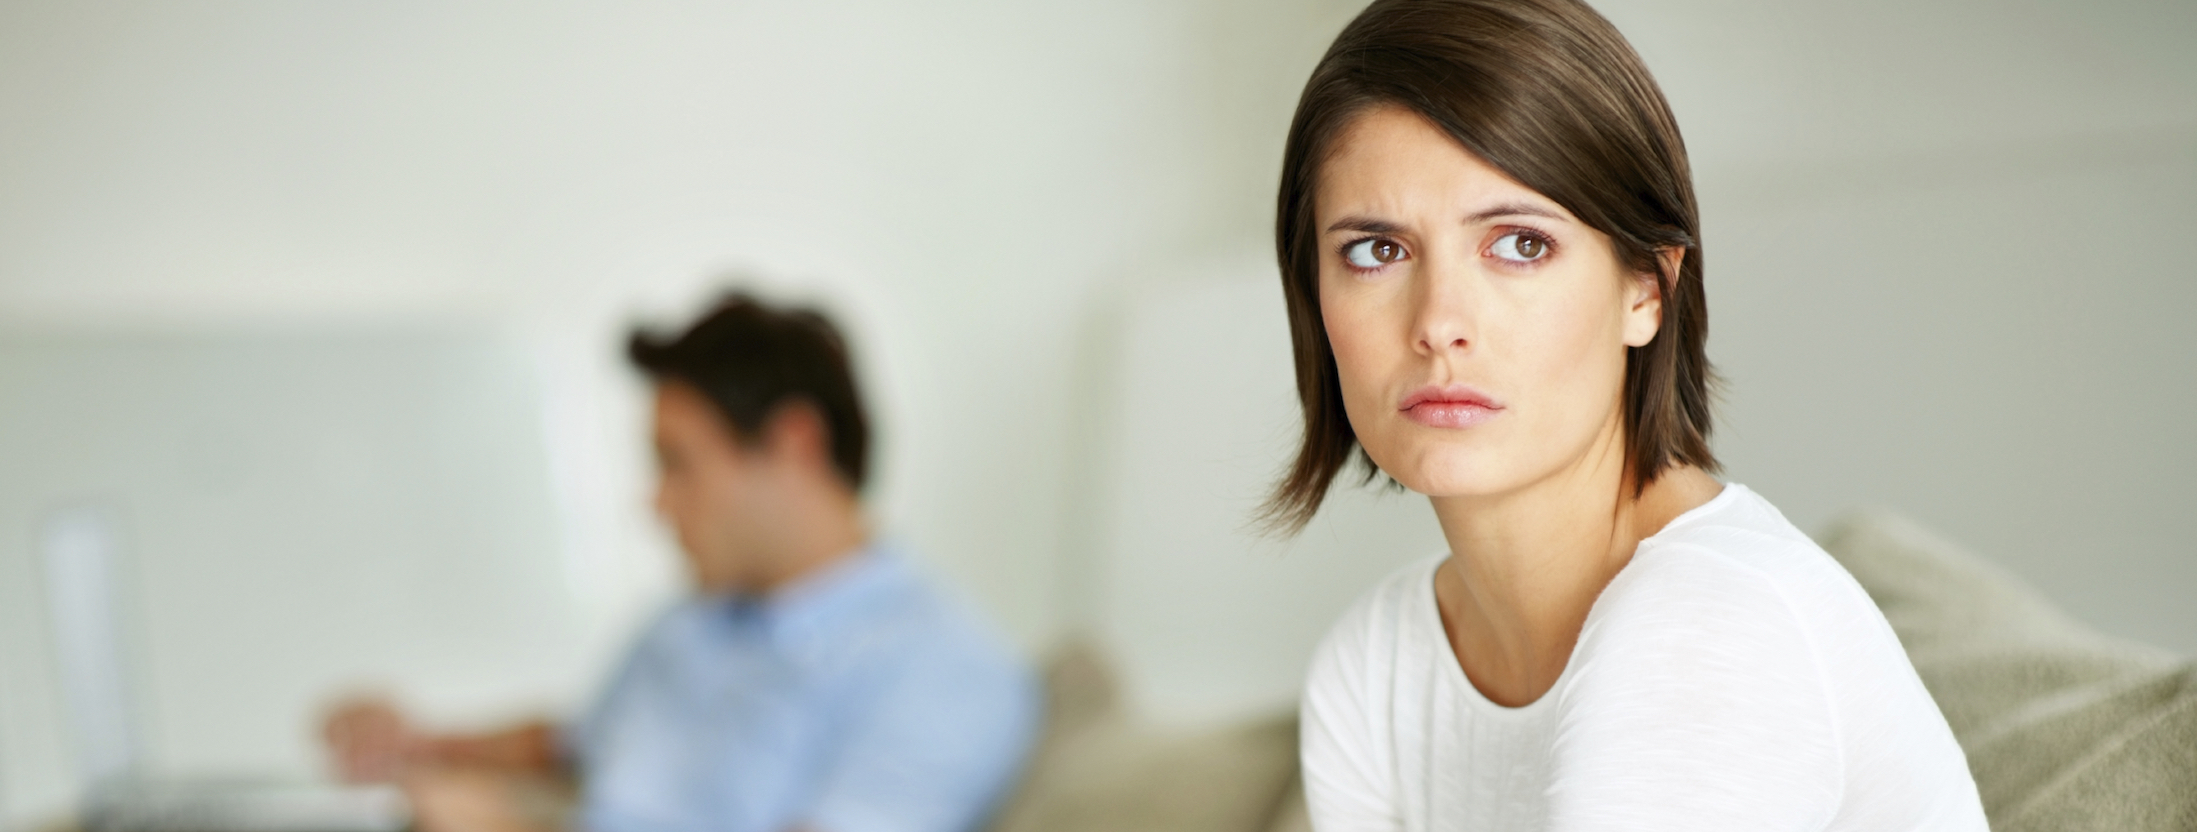 psychotherapy, williamsburg, anxiety, depression, couples counseling